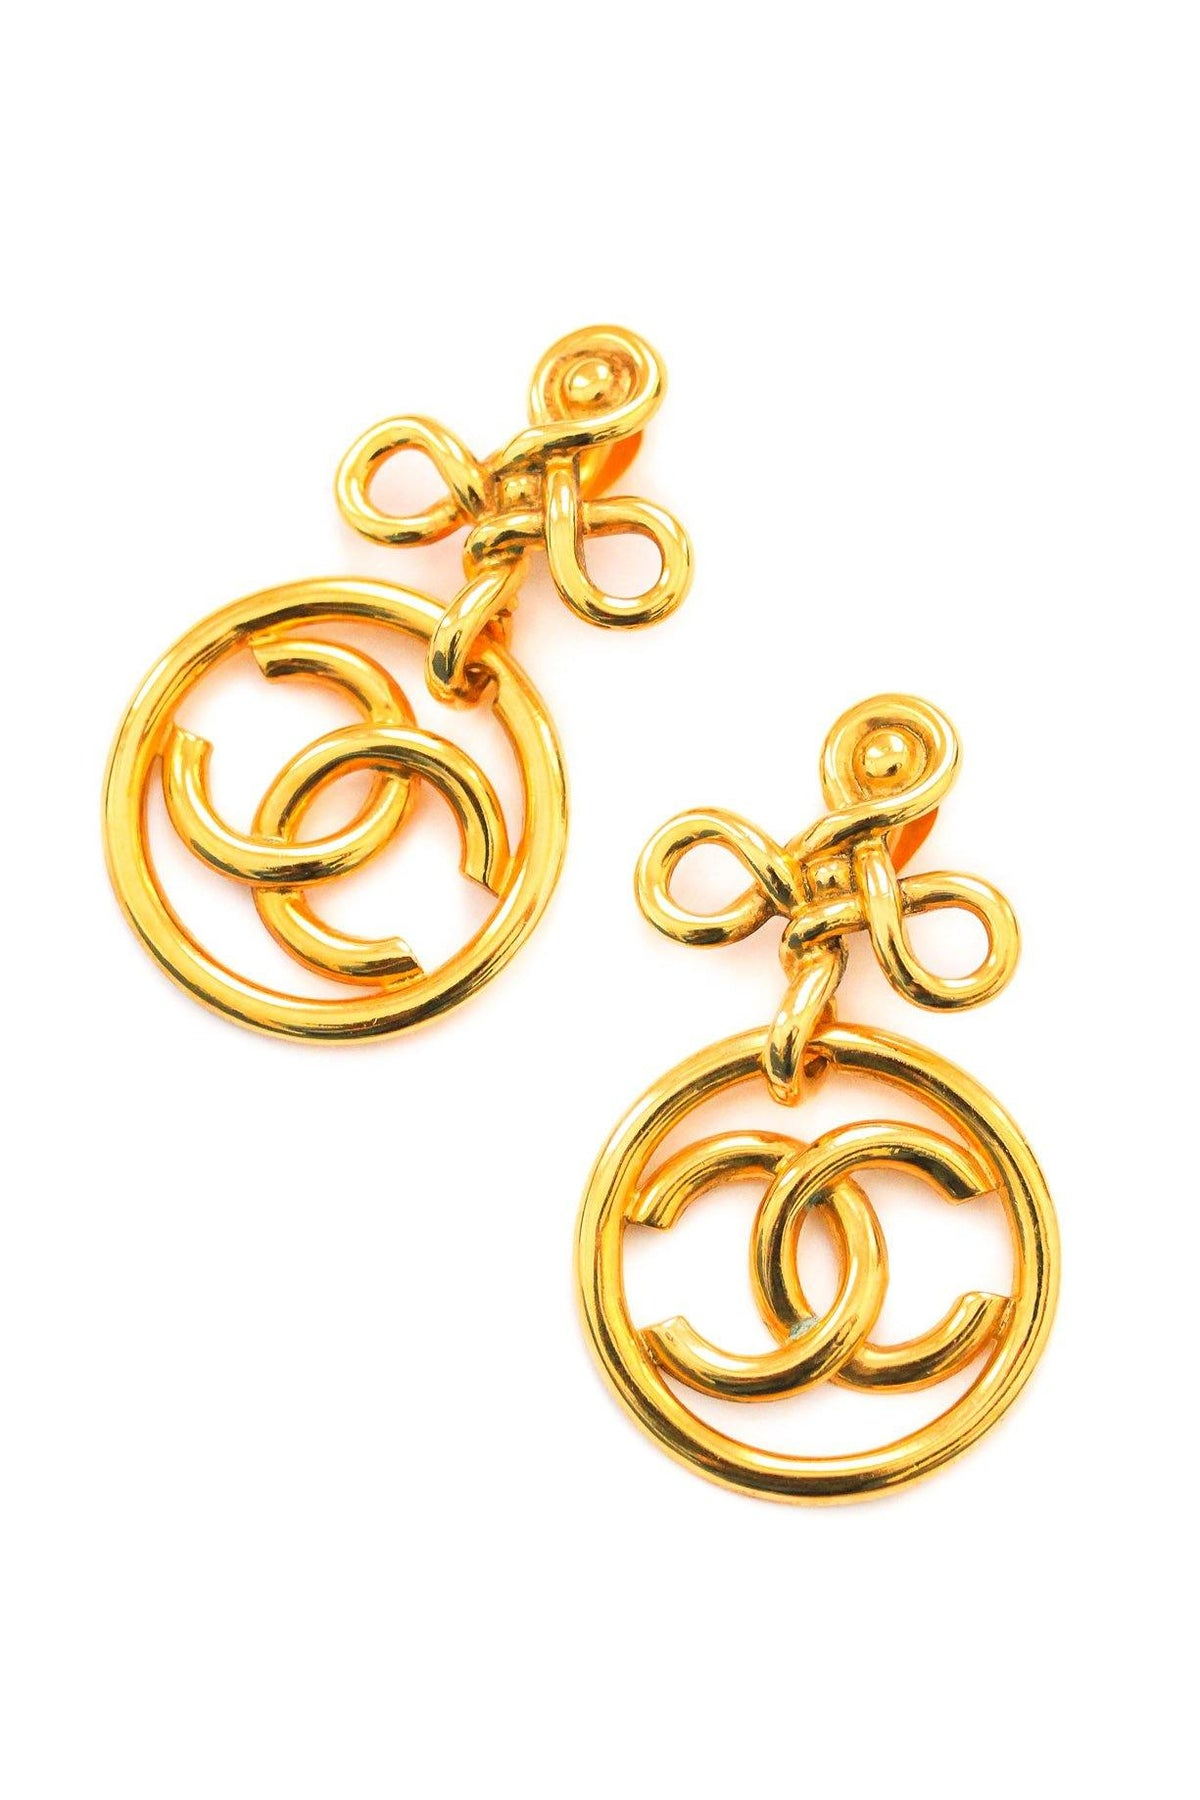 Chanel Statement Clip-on Earrings from Sweet & Spark